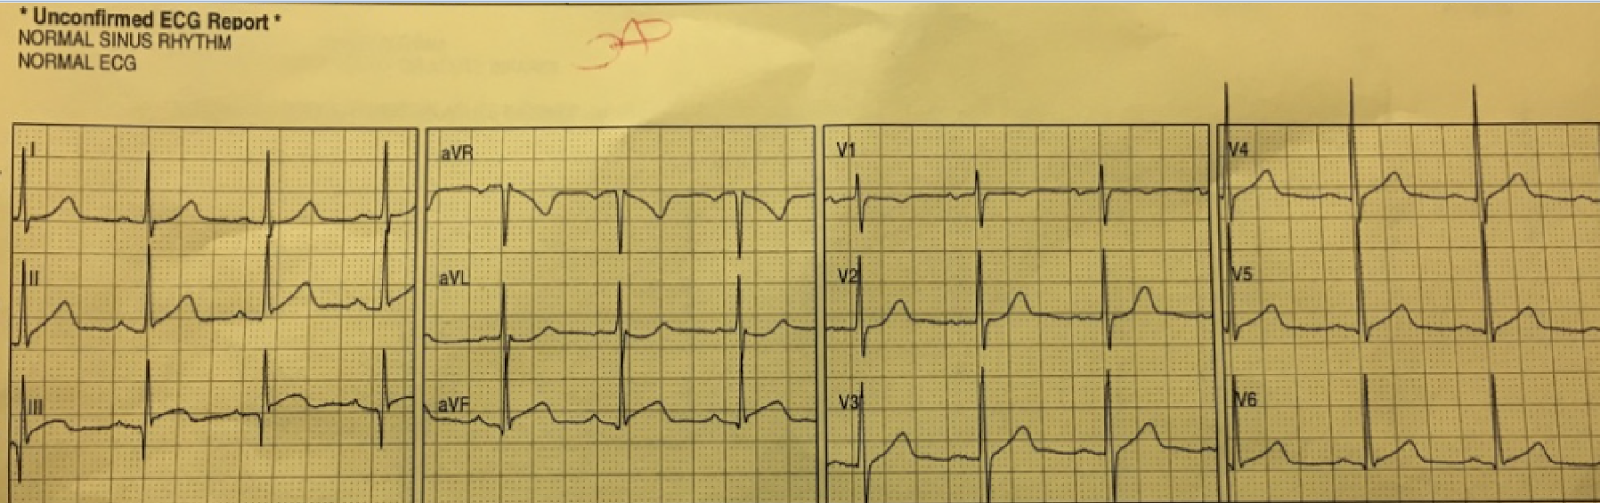 dr smith s ecg blog should emergency physicians be interrupted by